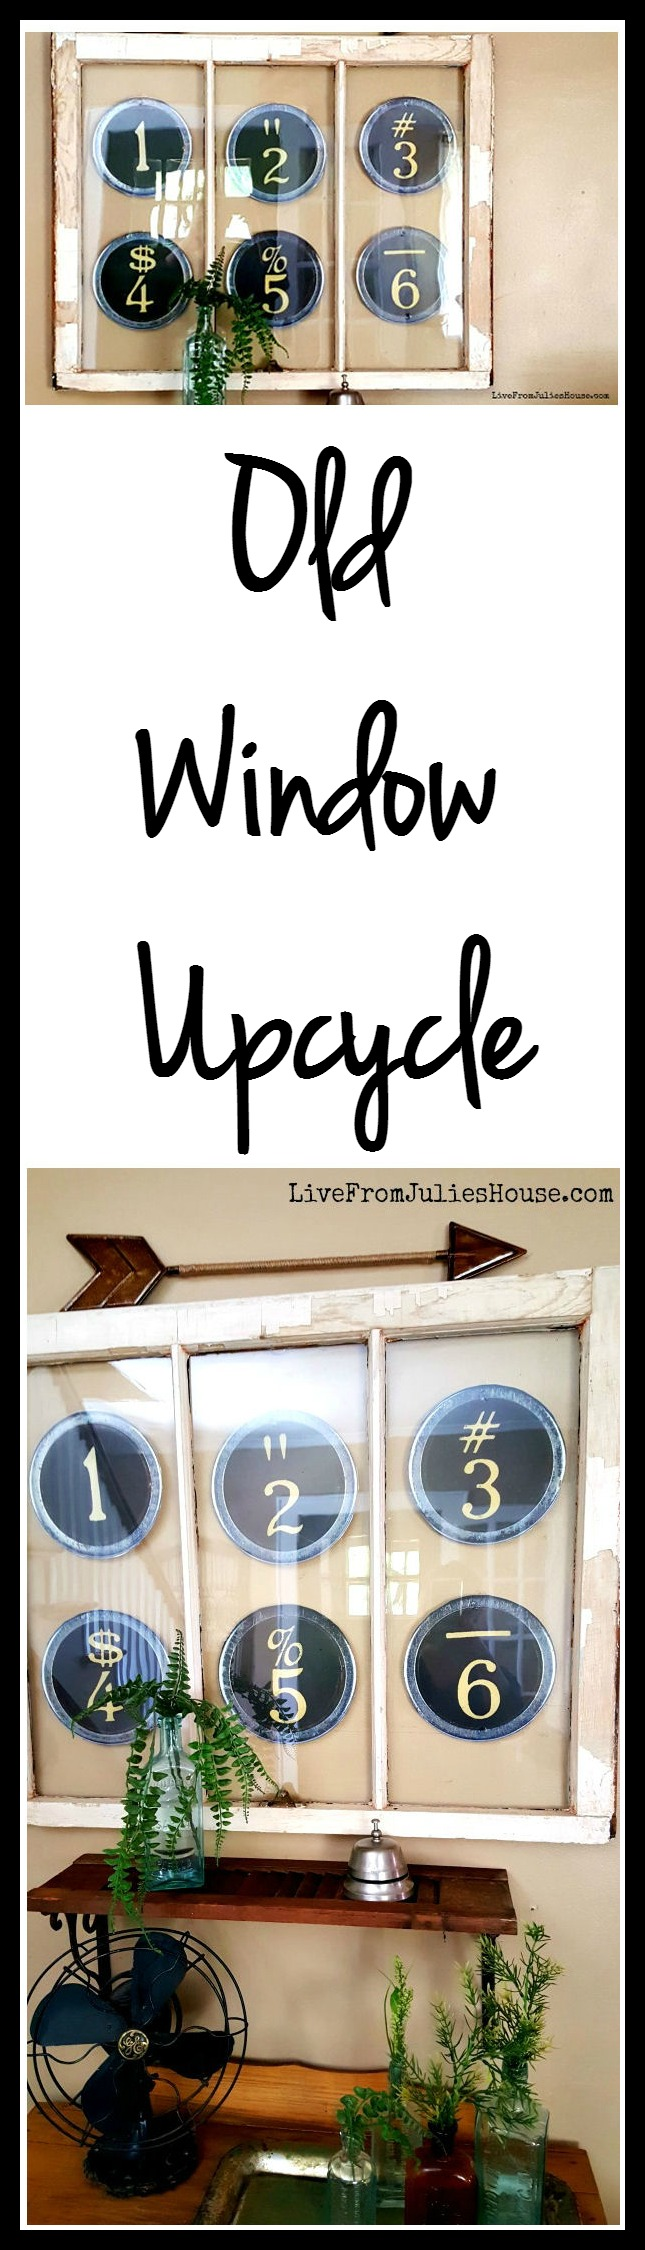 Old Window Upcycle + Budget Friendly Living Room Update - I was looking for something unique to put in my old window, so I picked up a couple items at Hobby Lobby, added a few things I had around the house and managed to update this little corner of my living room for just $19!